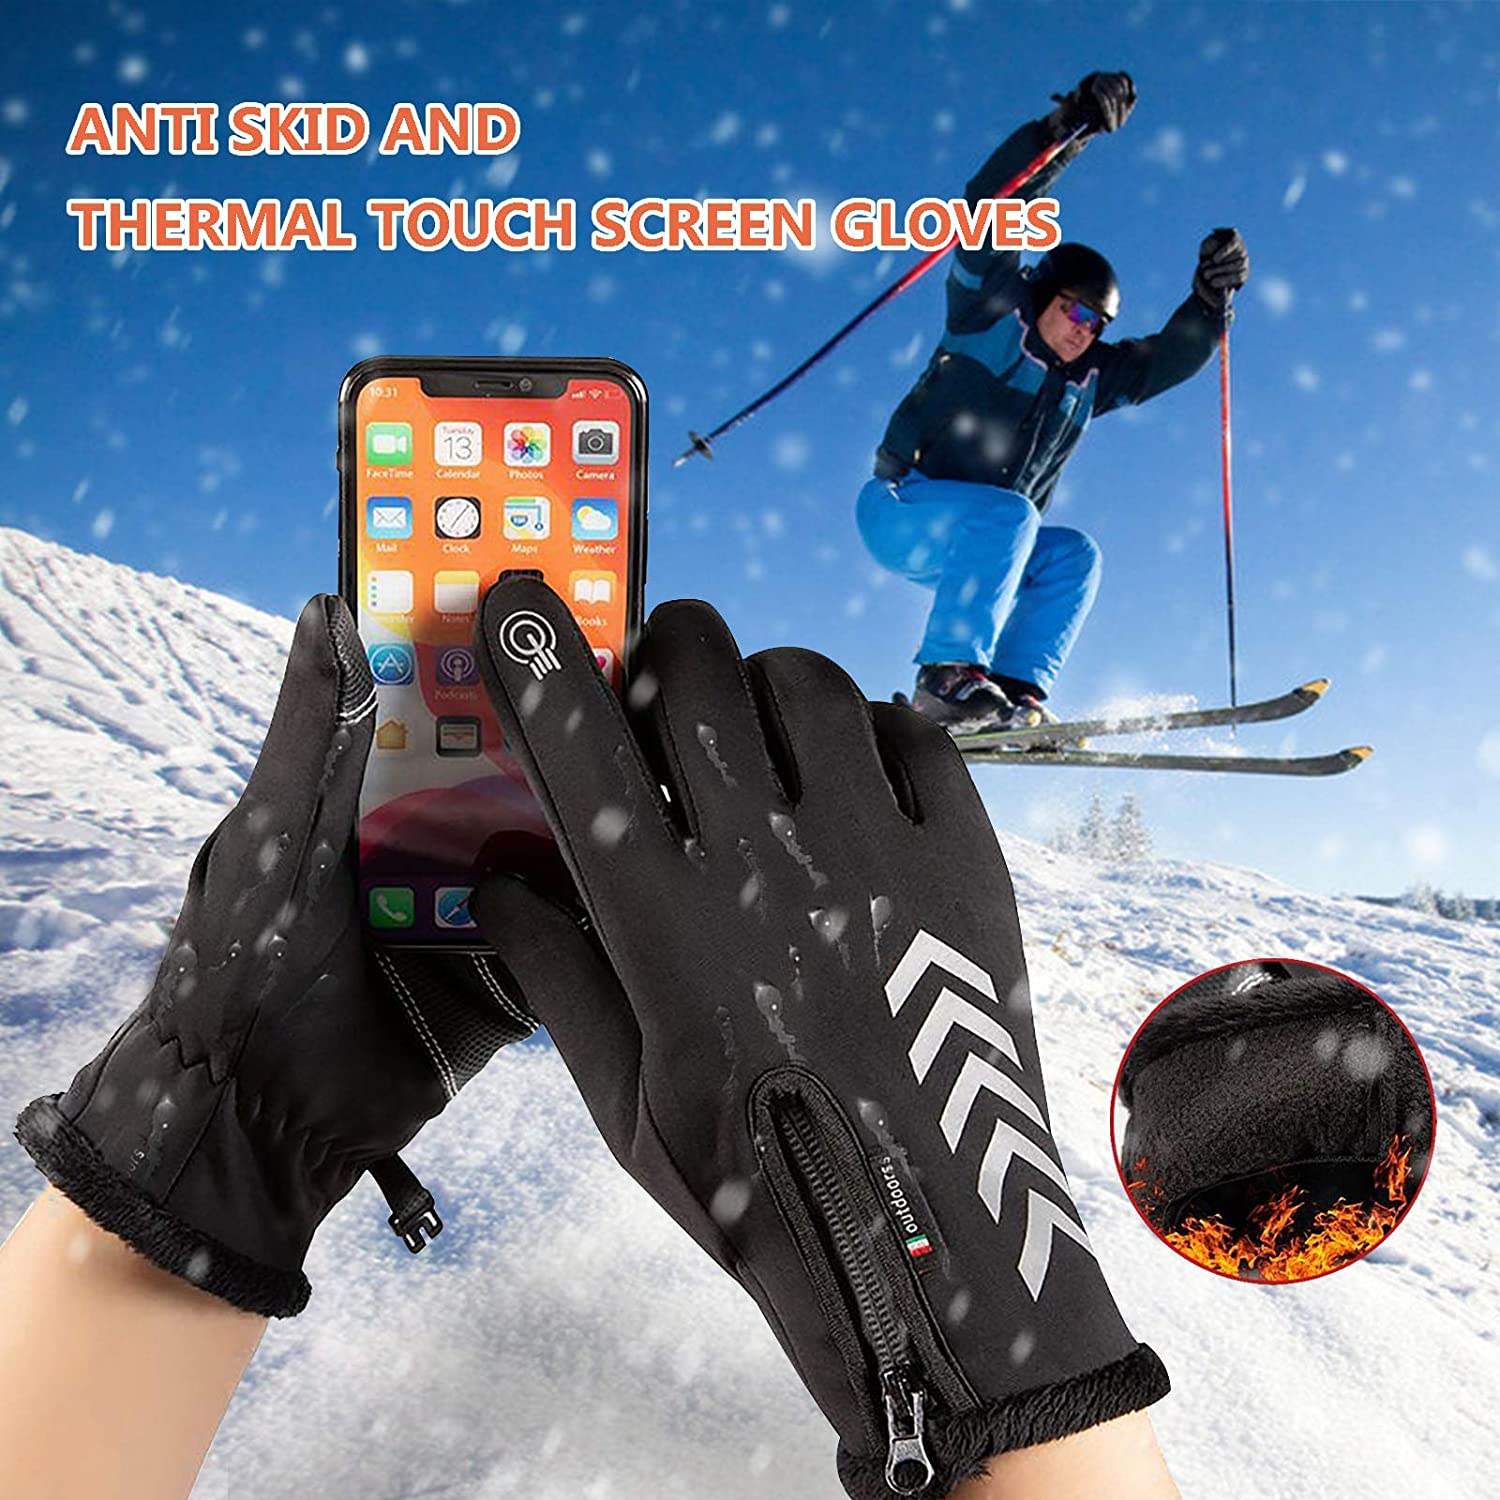 C-Easy Touchscreen Gloves with Lining,Warm Thermal /& Anti-Skid /& Waterproof Winter Gloves,All Finger Touch Screen Gloves with Zipper for Cycling and Outdoor Work